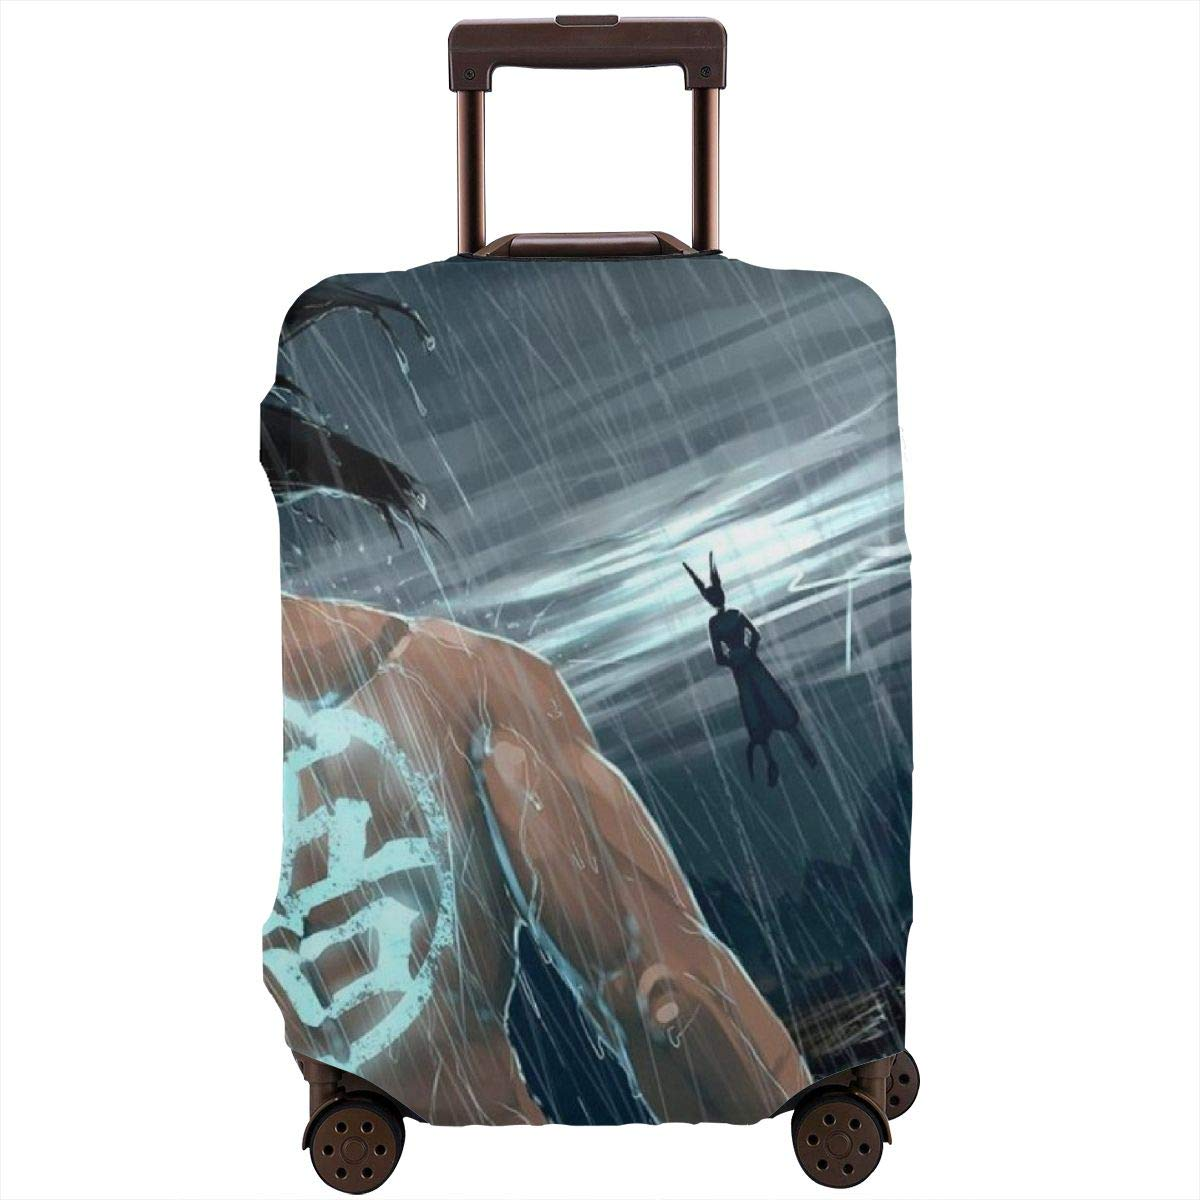 Dragon Ball Suitcase Protector Travel Luggage Cover Fit